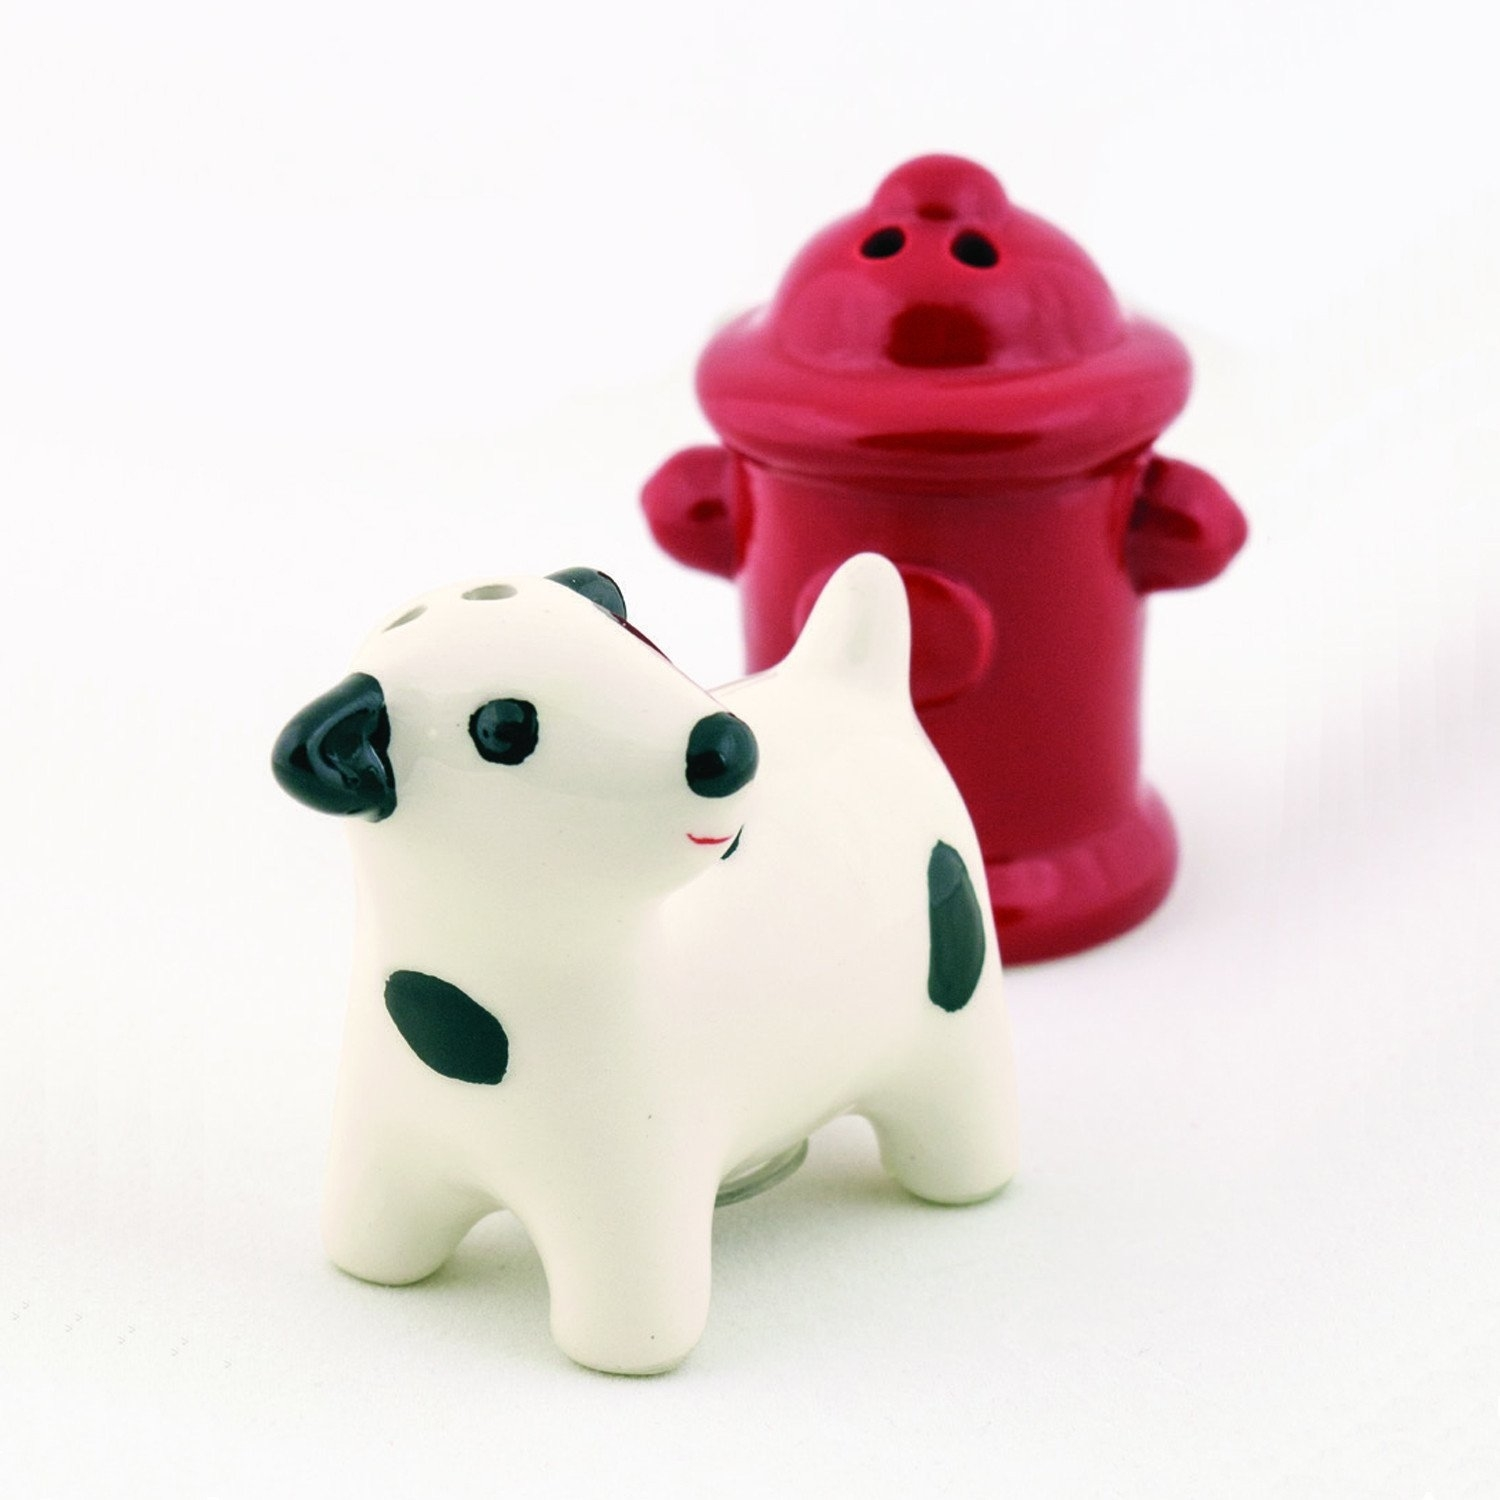 Dog & Fire Hydrant Ceramic Salt & Pepper Shakers. Made Out Of Hand-Painted Ceramic.